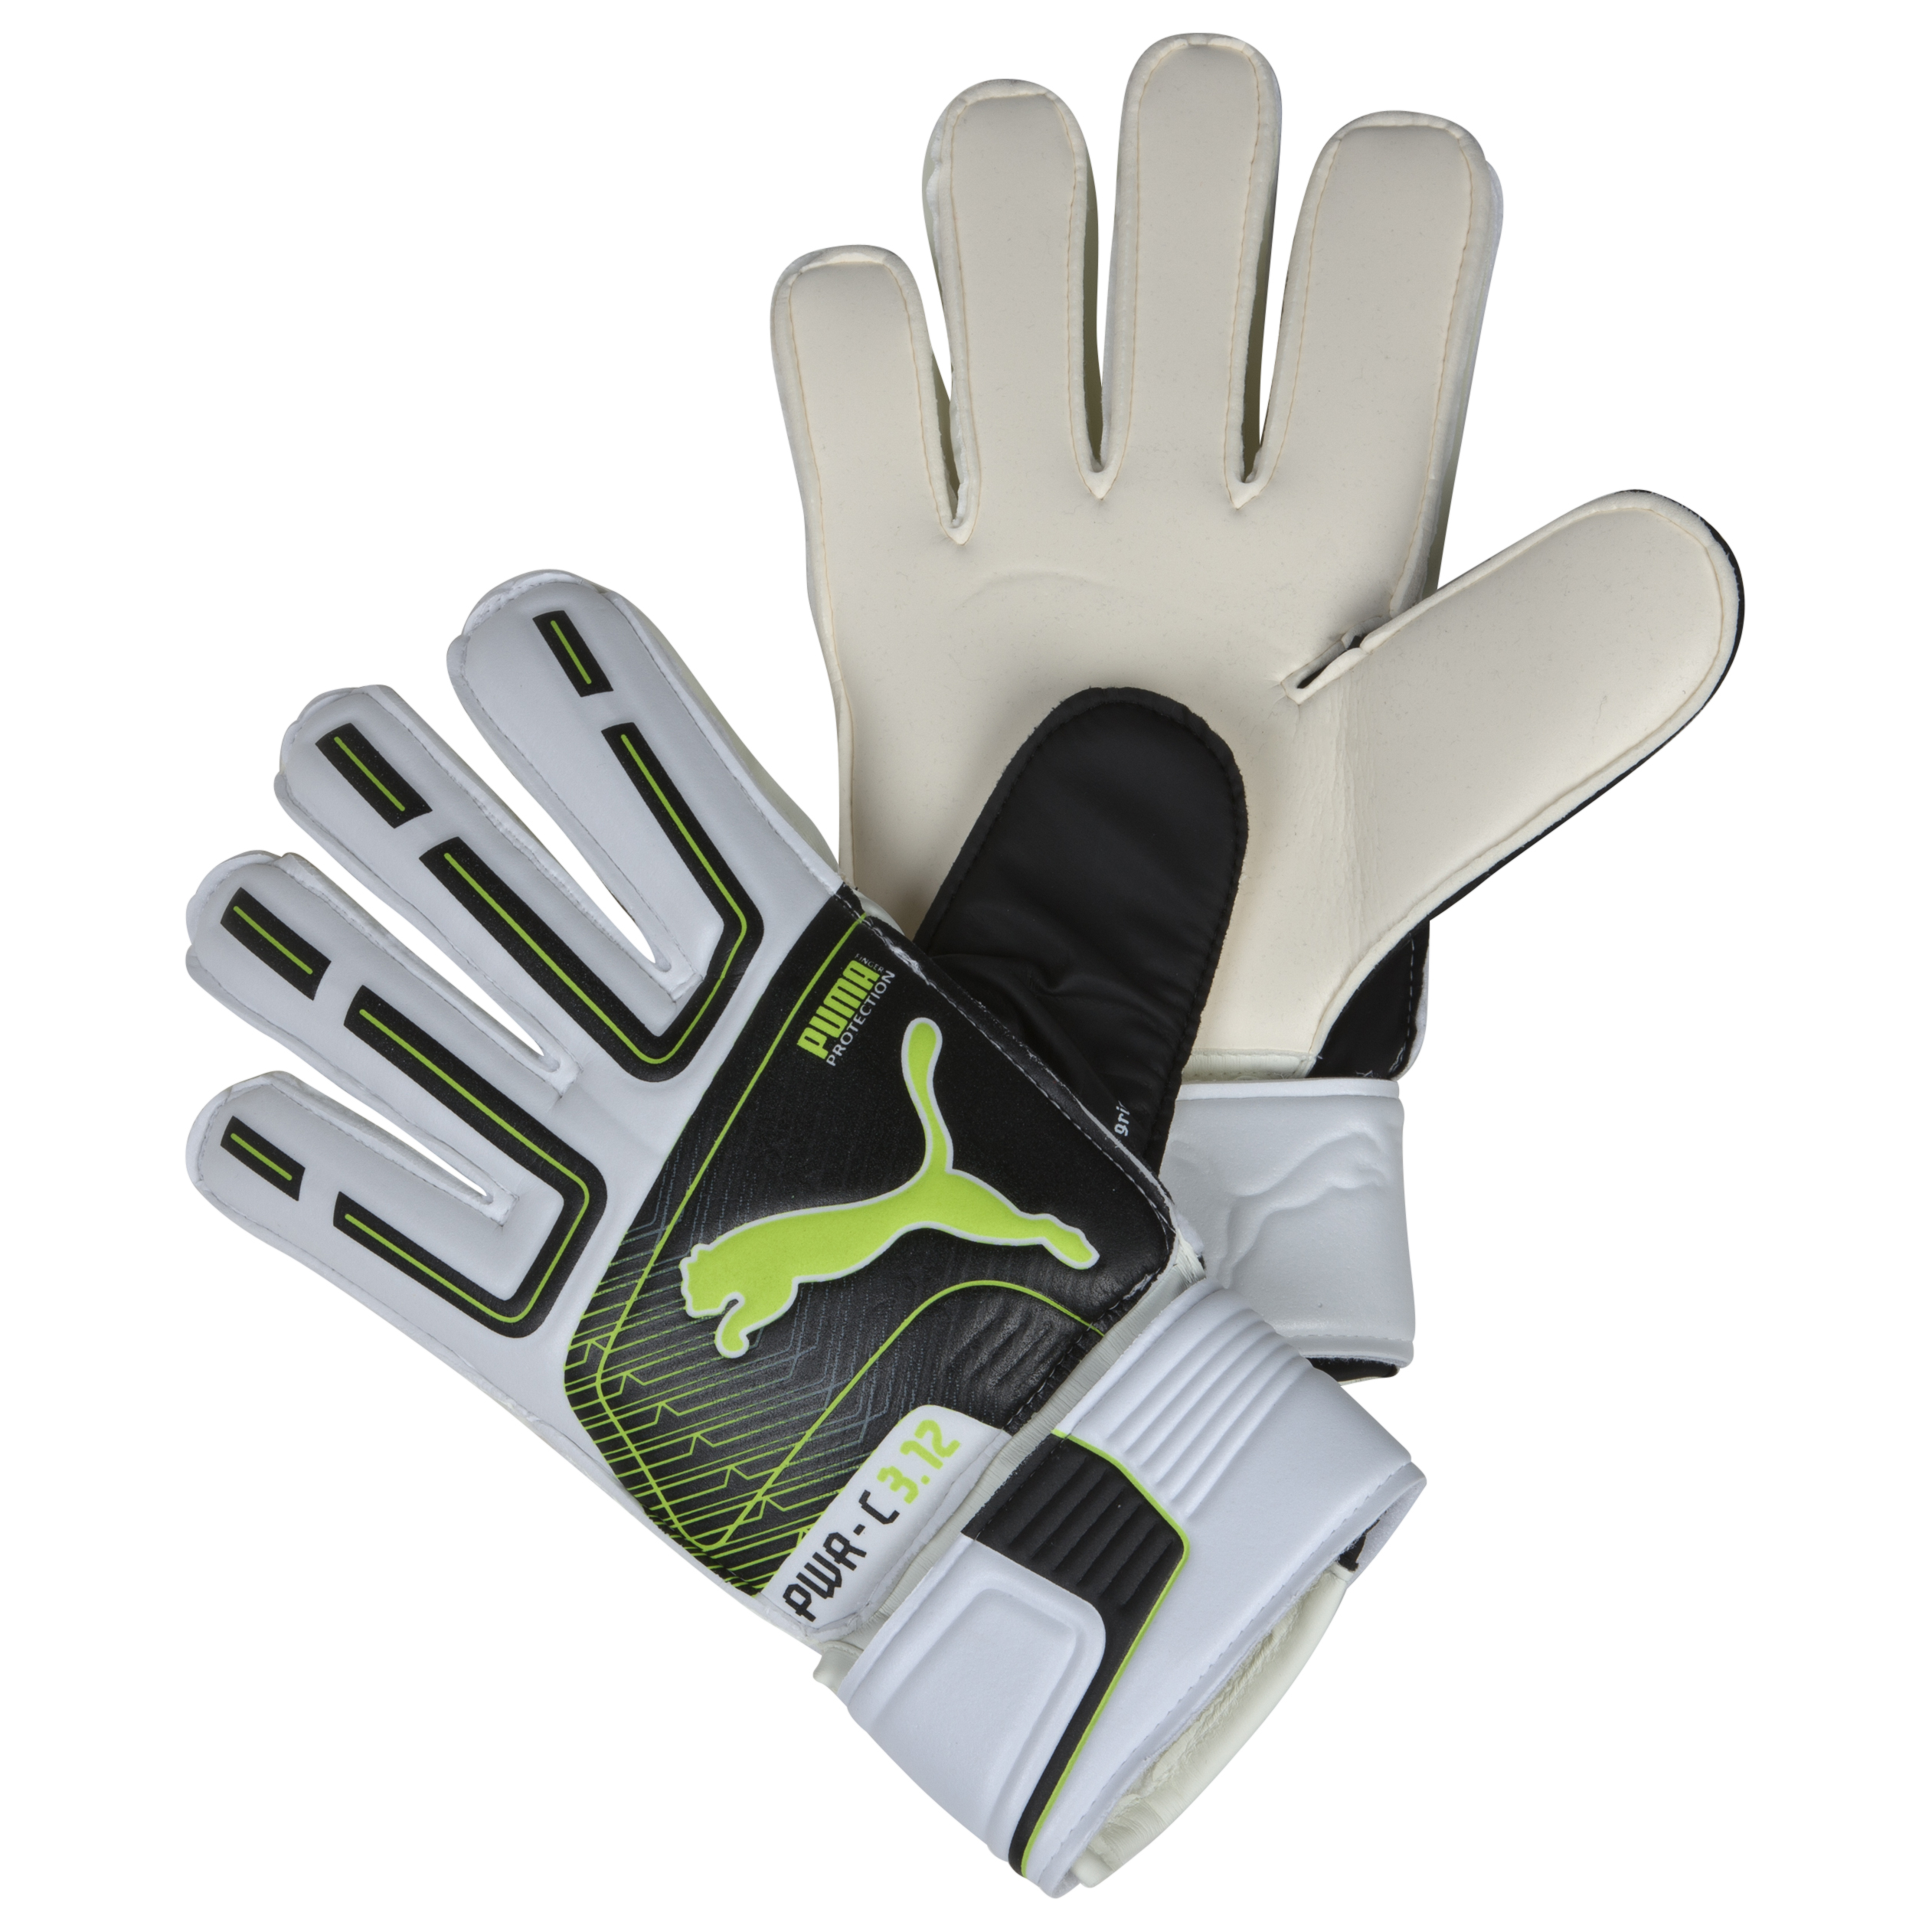 Puma PowerCat 3.12 Protect Goalkeeper Gloves - White/Black/Lime Punch/Dark Shadow